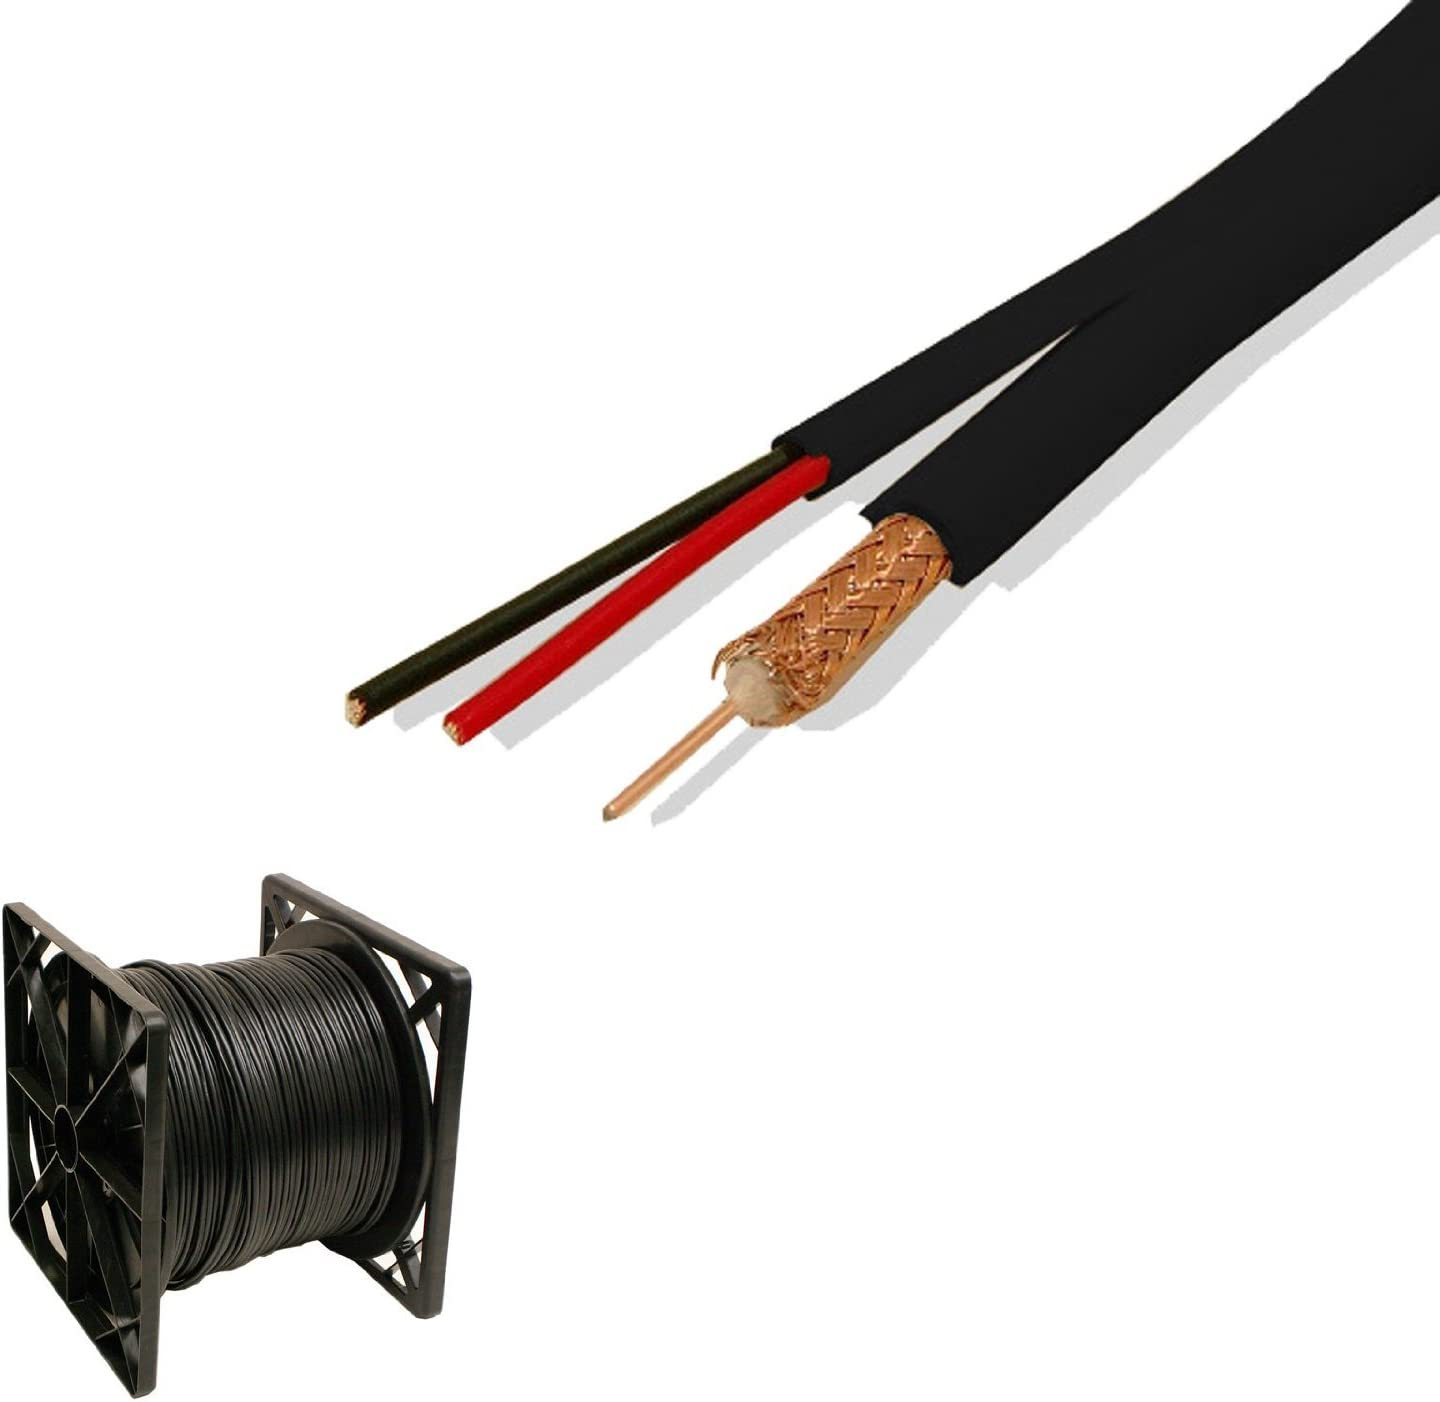 DC Power  Siamese Security Camera Cable 500FT Black RG59 Tool Kit CCTV